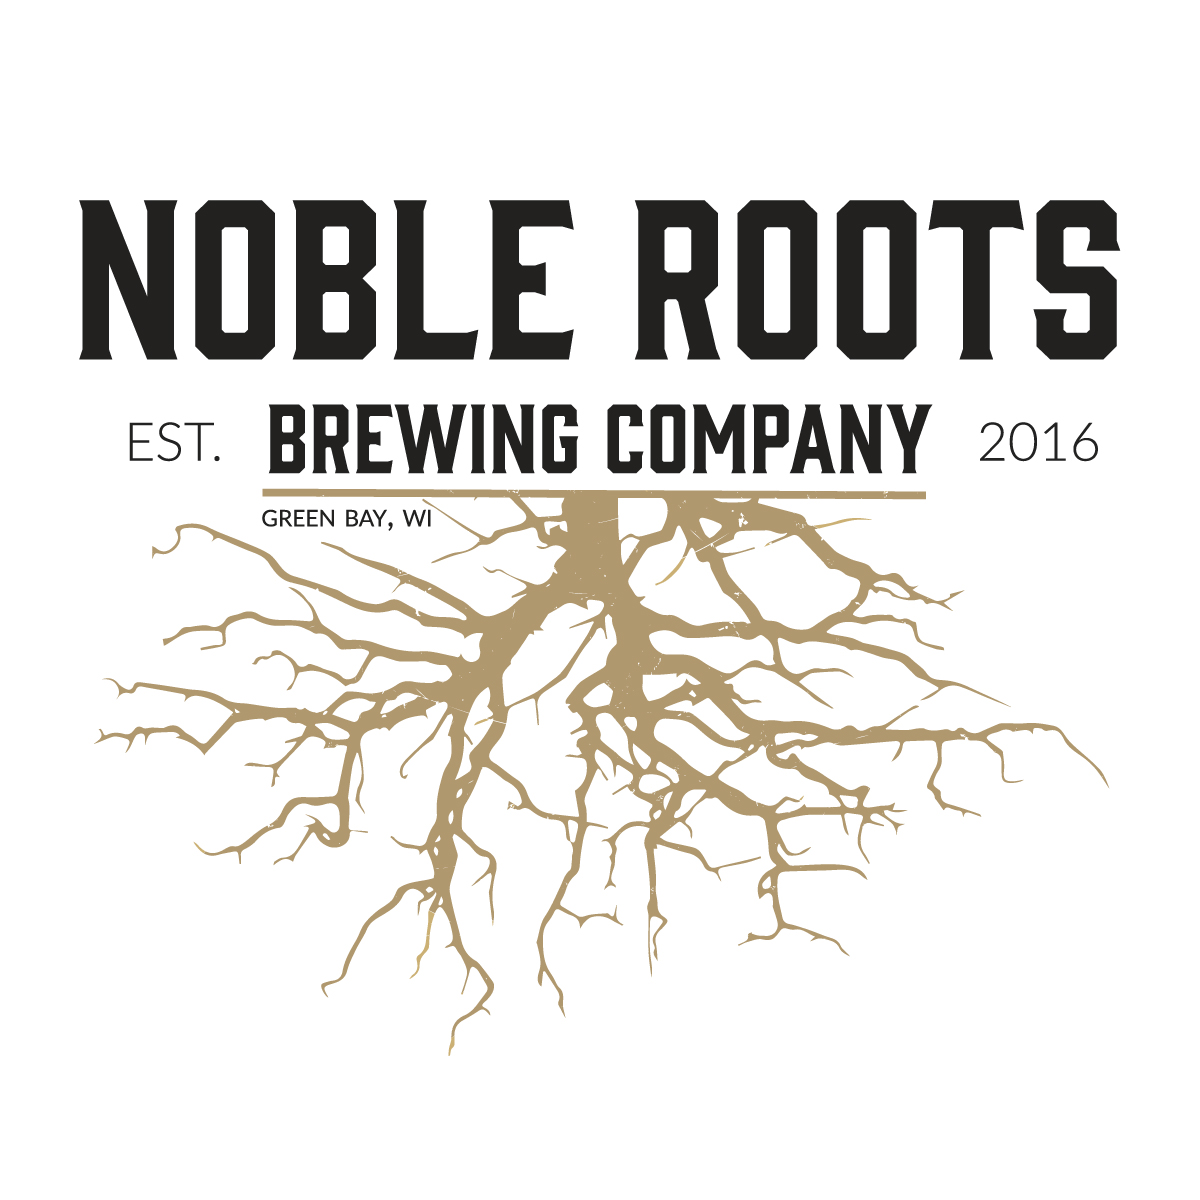 Noble-Roots-Brewing-Company_Light-Background.jpg